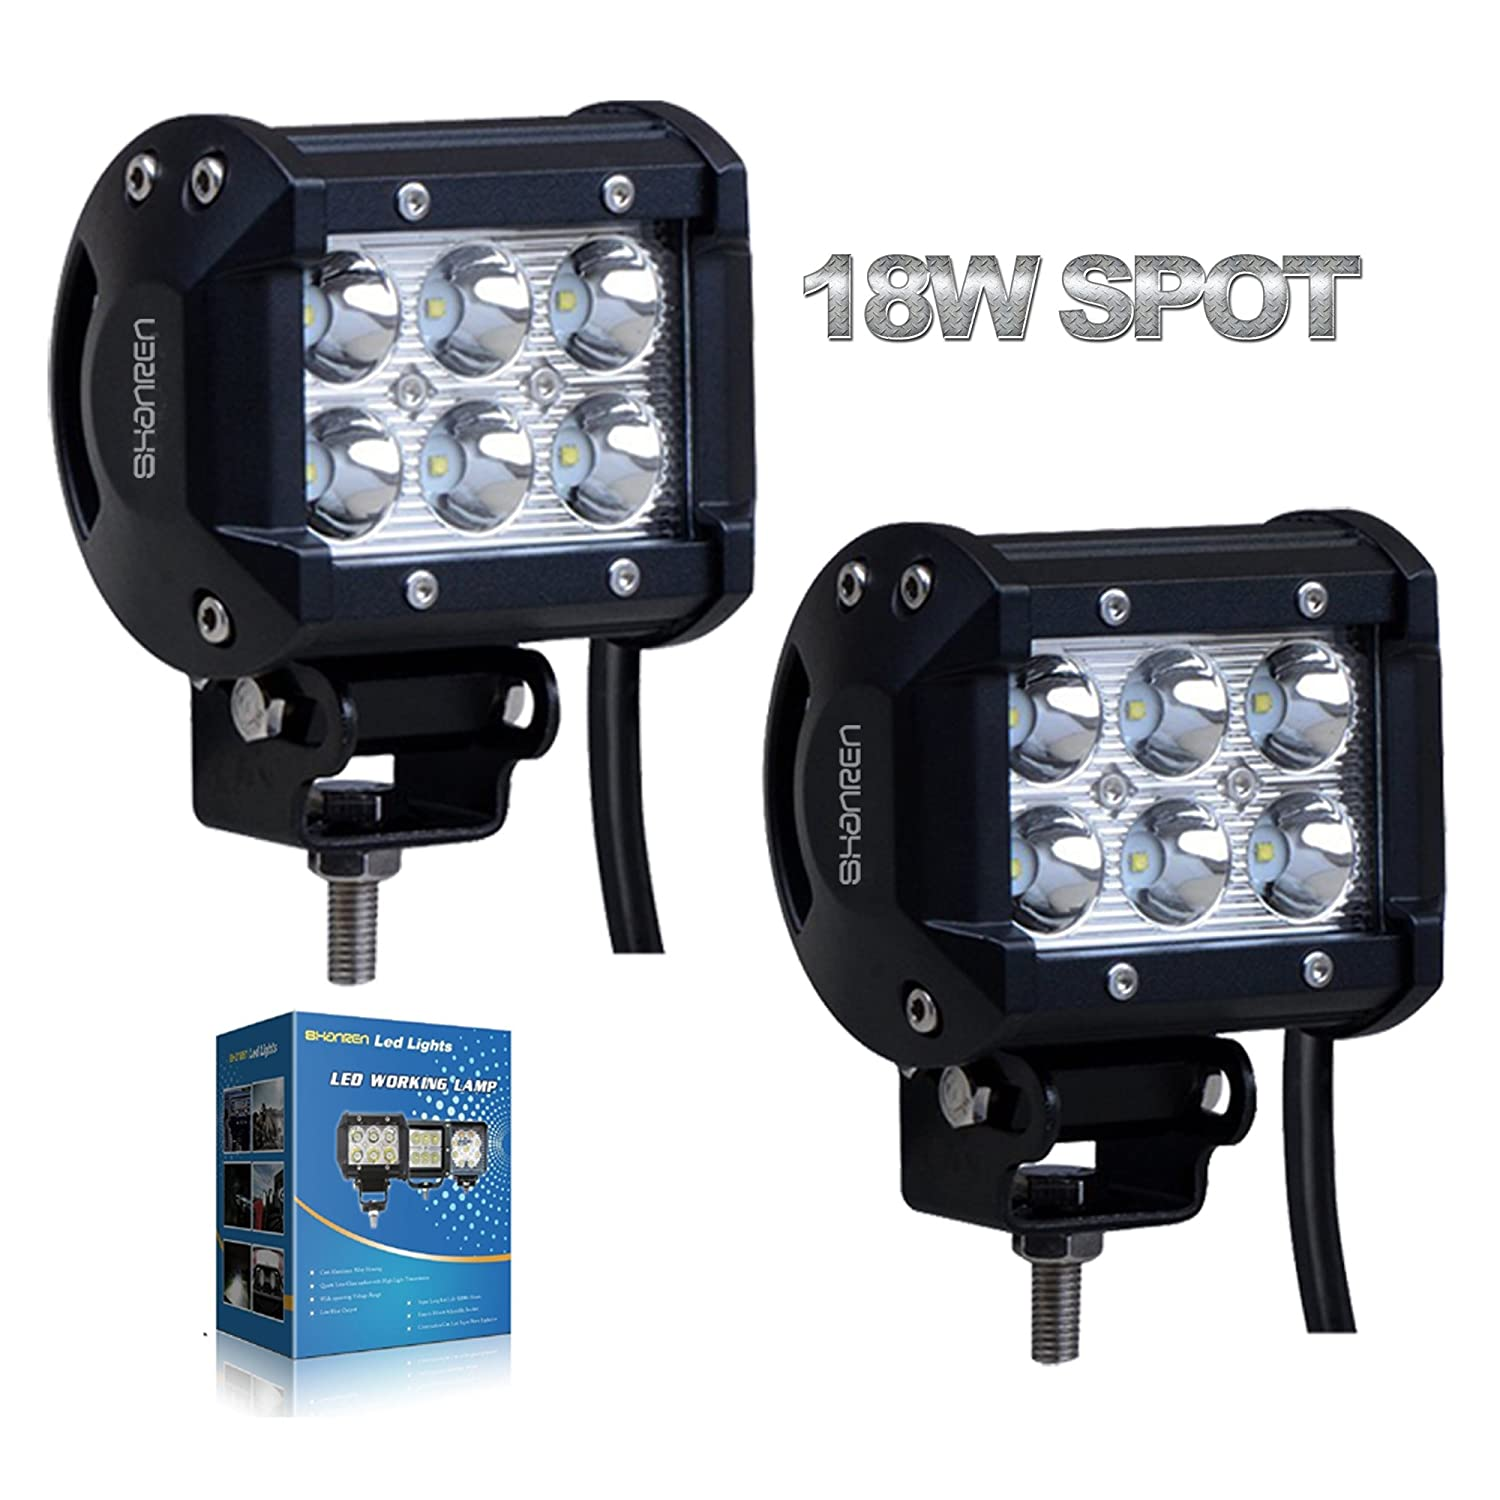 Shanren 2pcs 4 18w Cree Led Work Light Bar Spot Beam 30 Details About Flood Driving Wiring Button On Off Degree Waterproof For Road Truck Car Atv Suv Jeep Boat 4wd Auxiliary